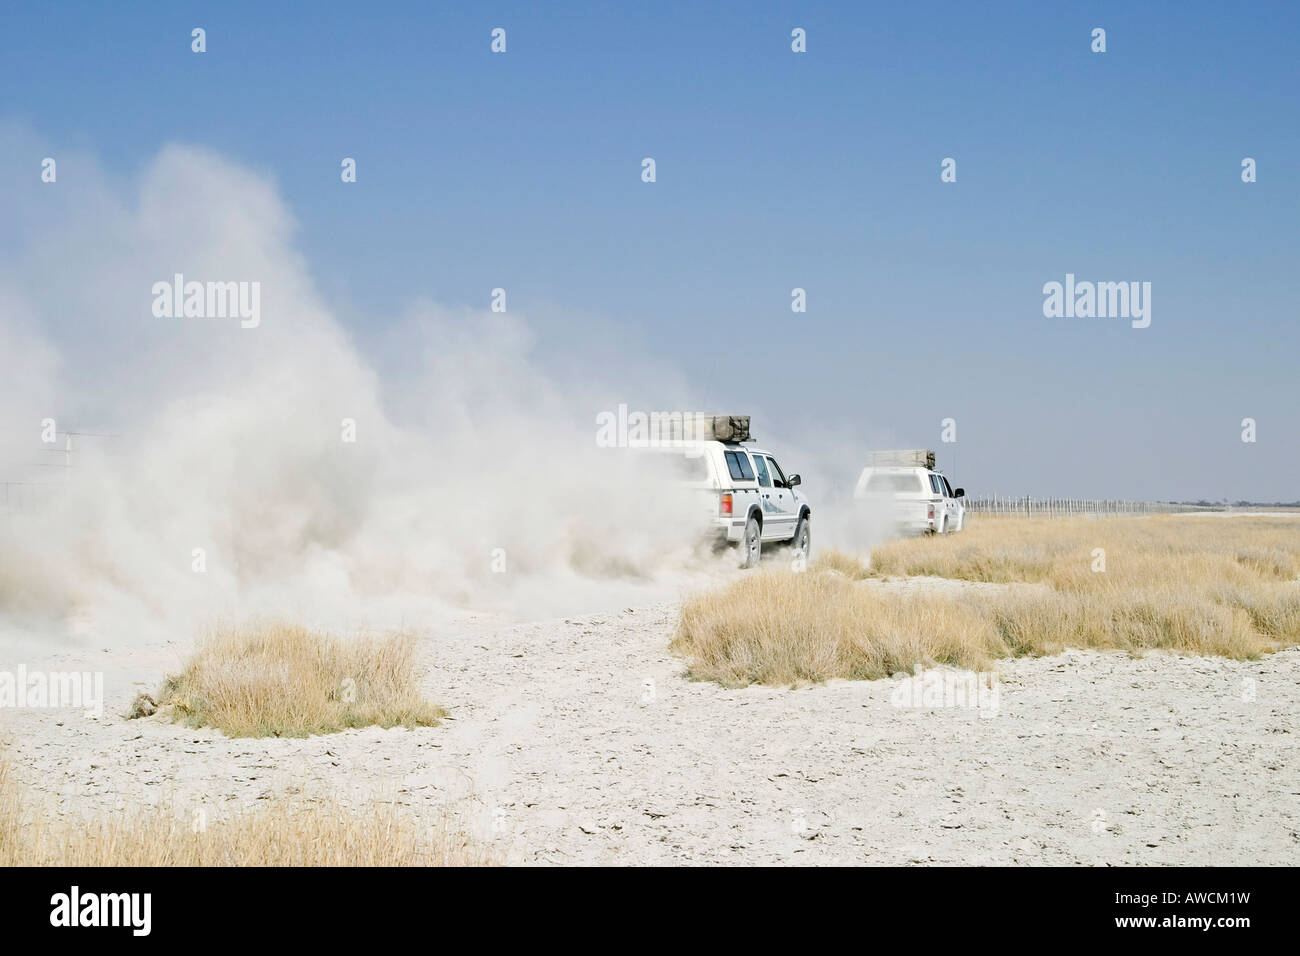 Offroad tour over a big salt pan, Sowa Pan, Makgadikgadi pans, Botswana, Africa Stock Photo